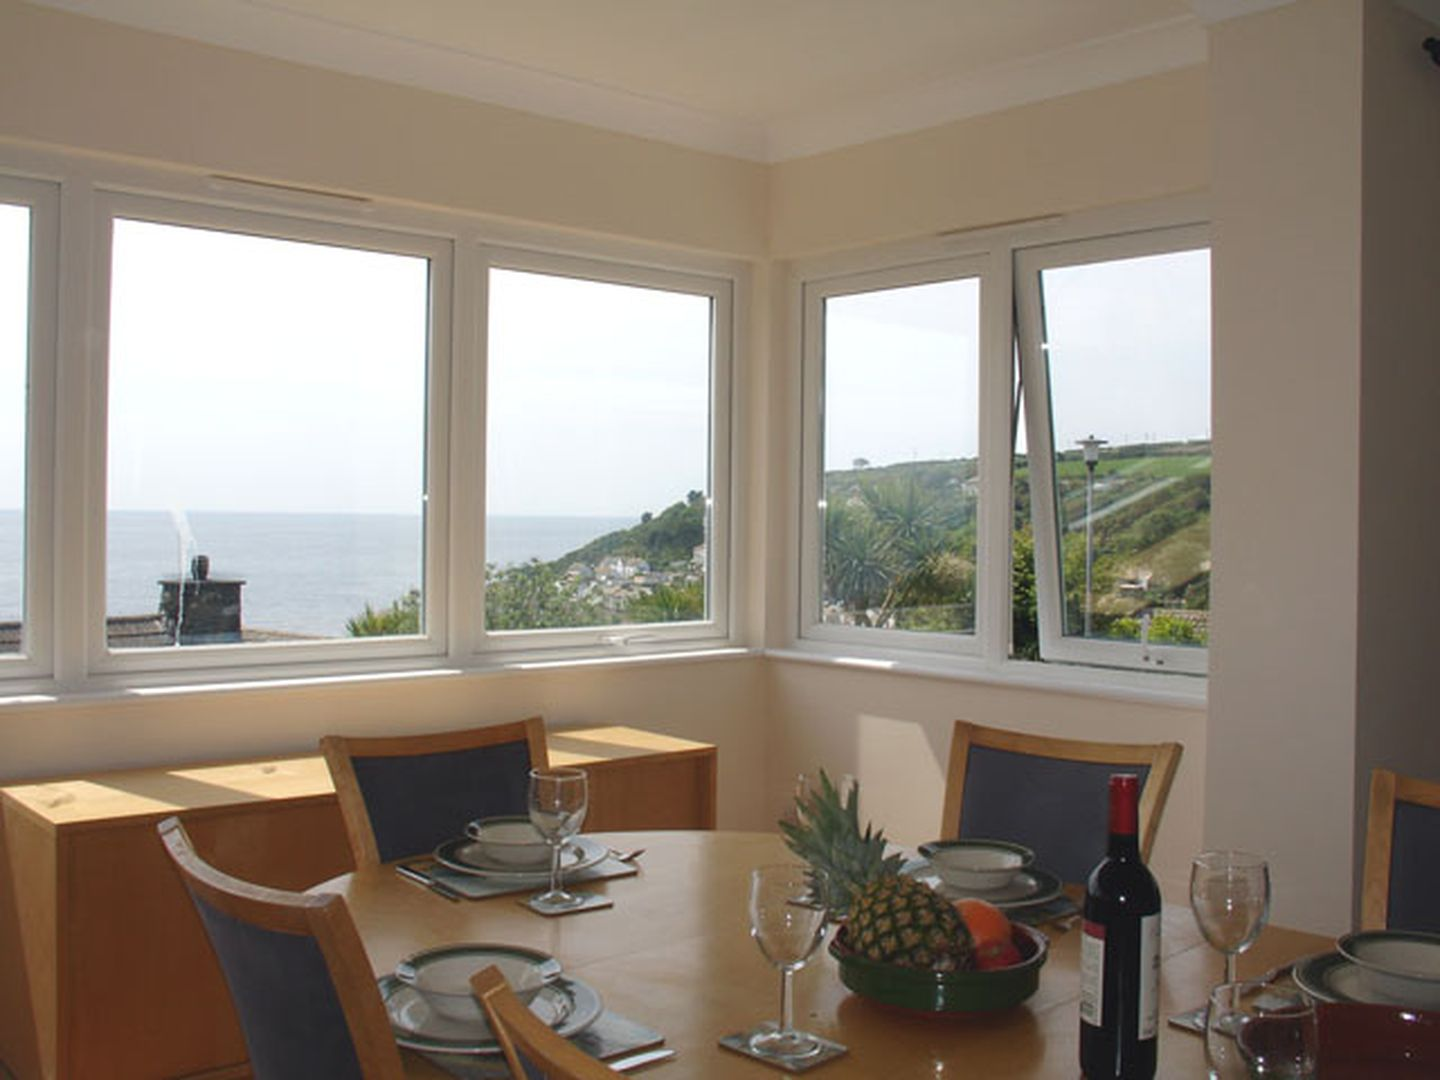 1 Gwelenys Road Dining Room With View